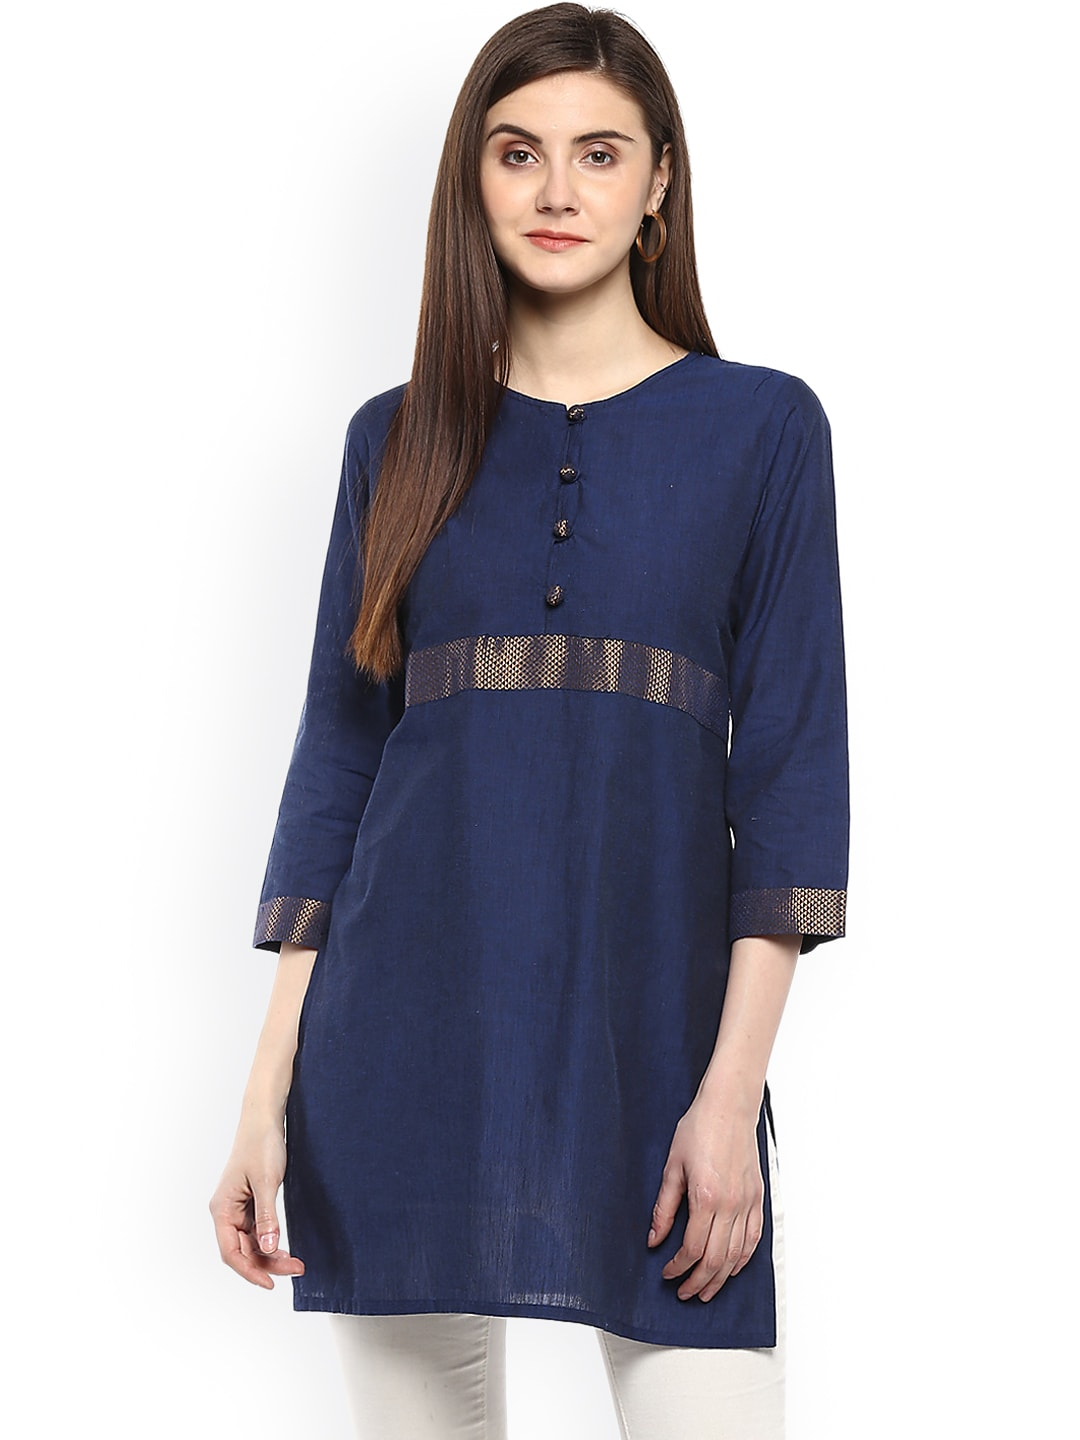 45687a5559a2 Tunics for Women - Buy Tunic Tops For Women Online in India